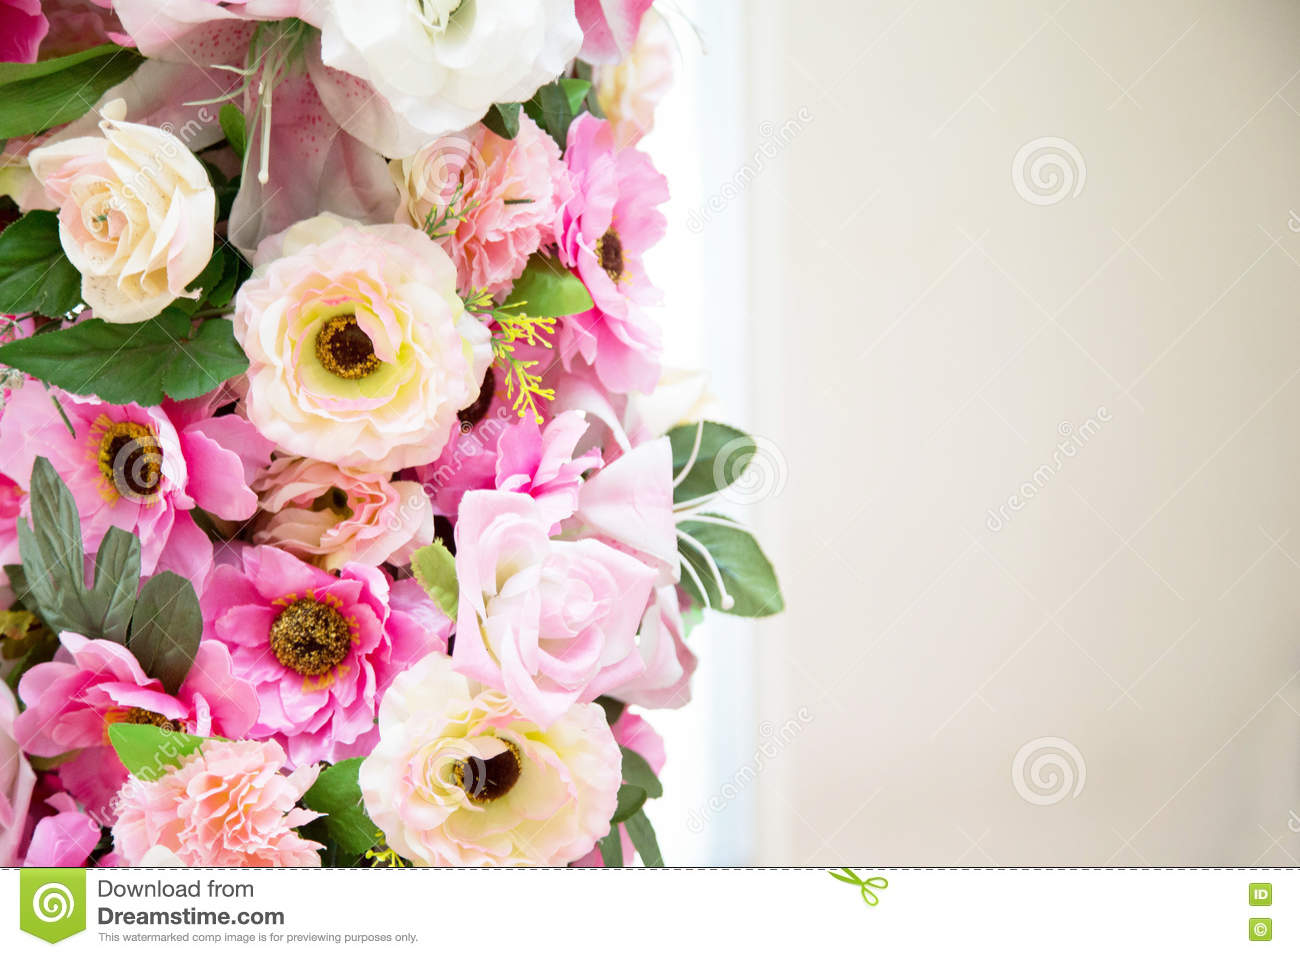 Flower Wedding Decoration Pink And White Colour On Vintage